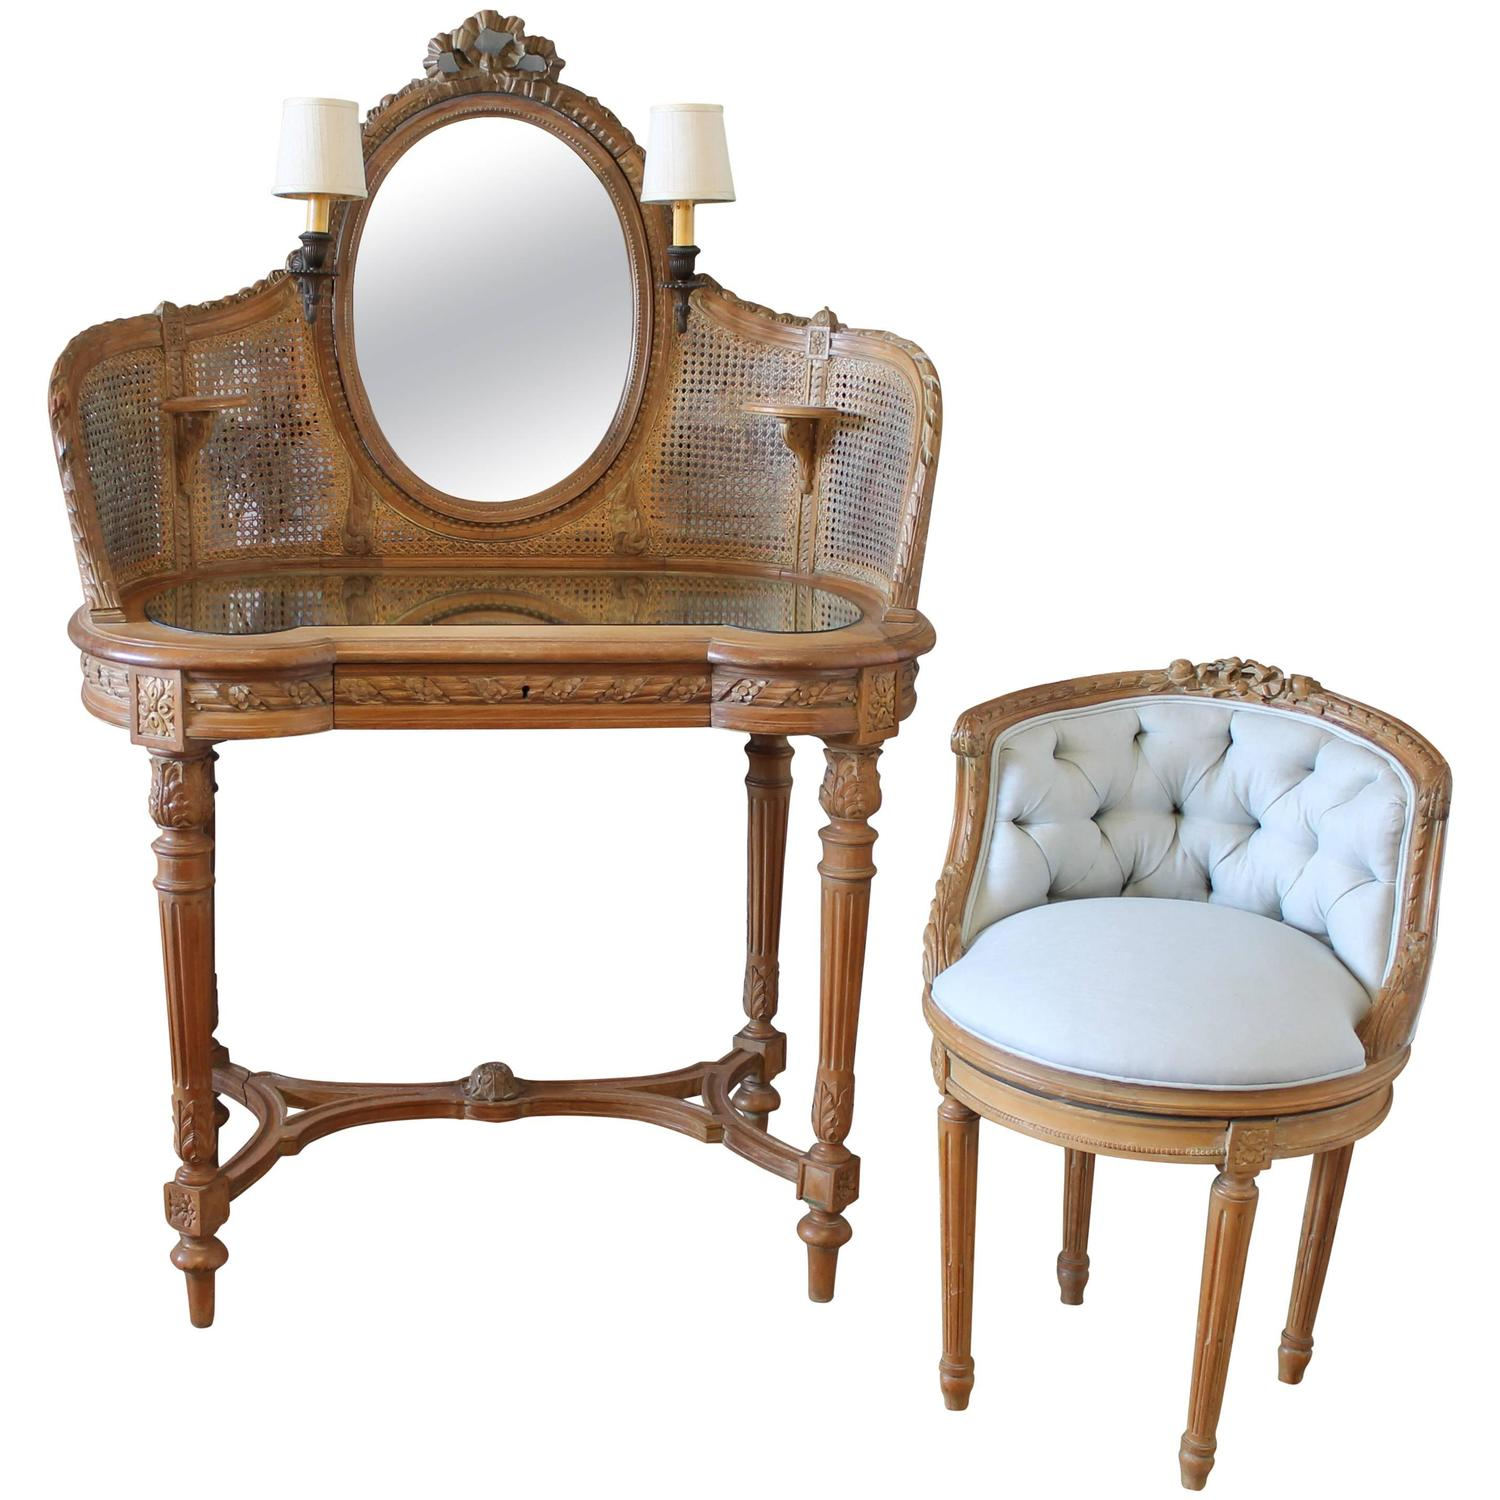 antique vanity chair design architects 19th century french walnut cane and linen